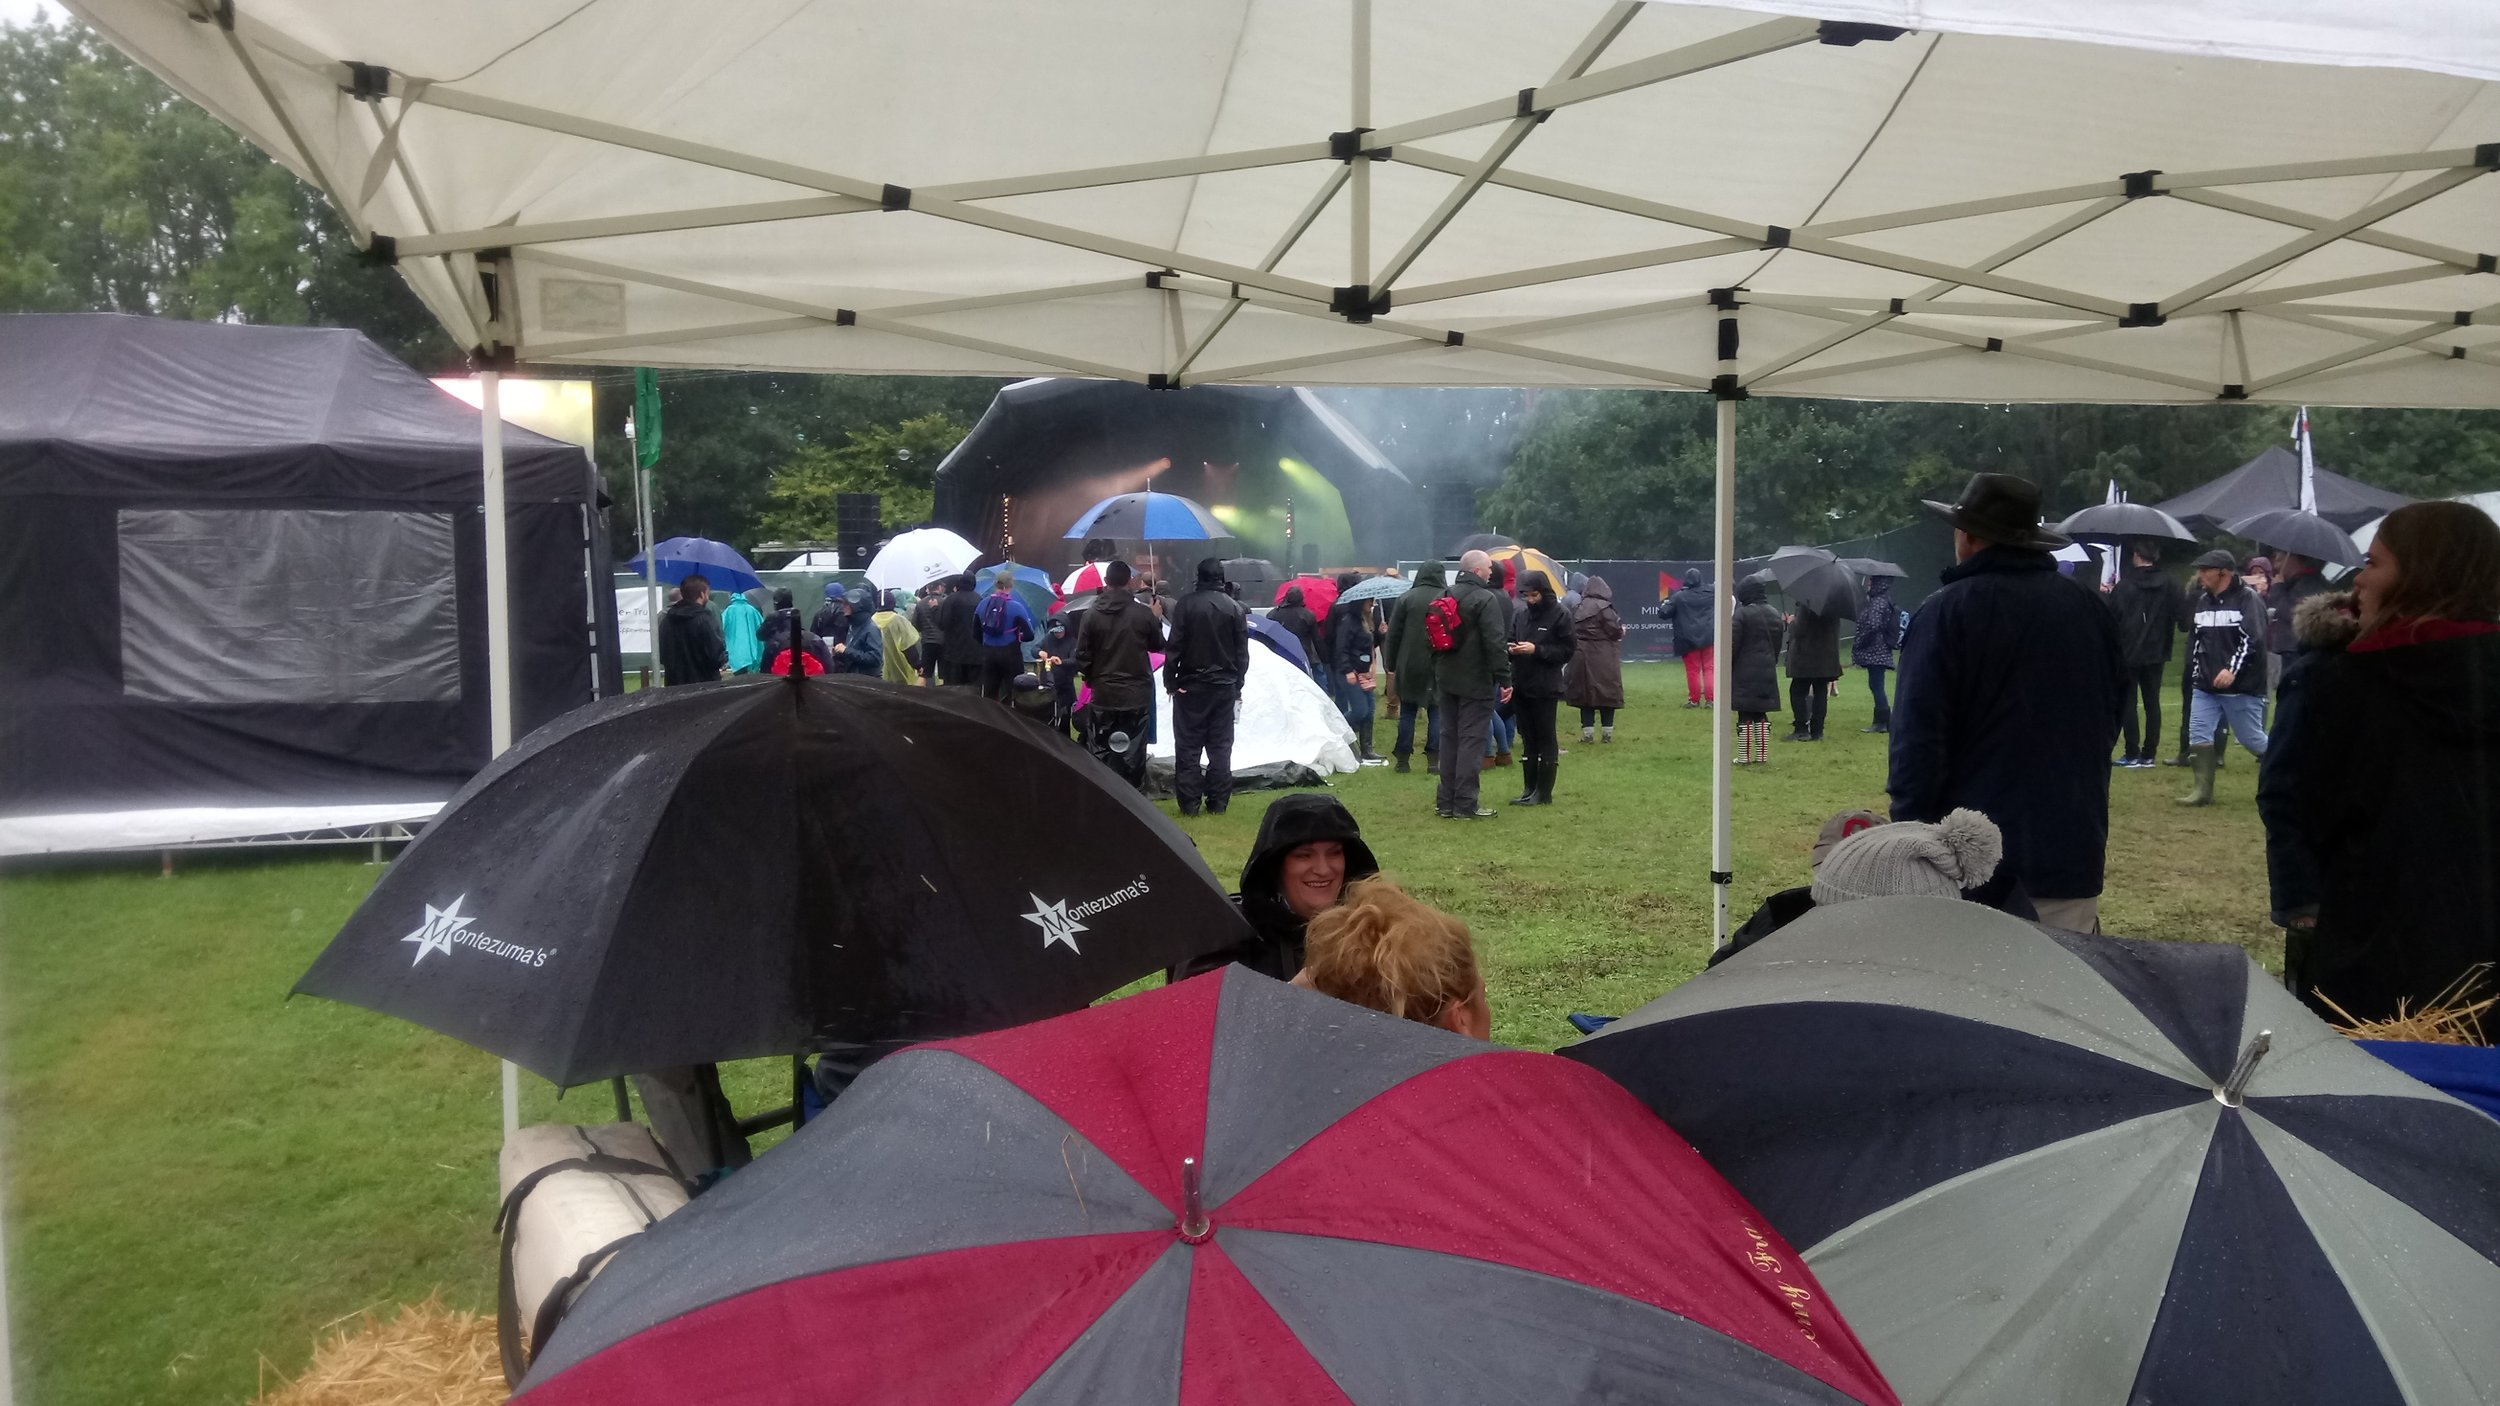 Making the most of it at the Graze Festival!